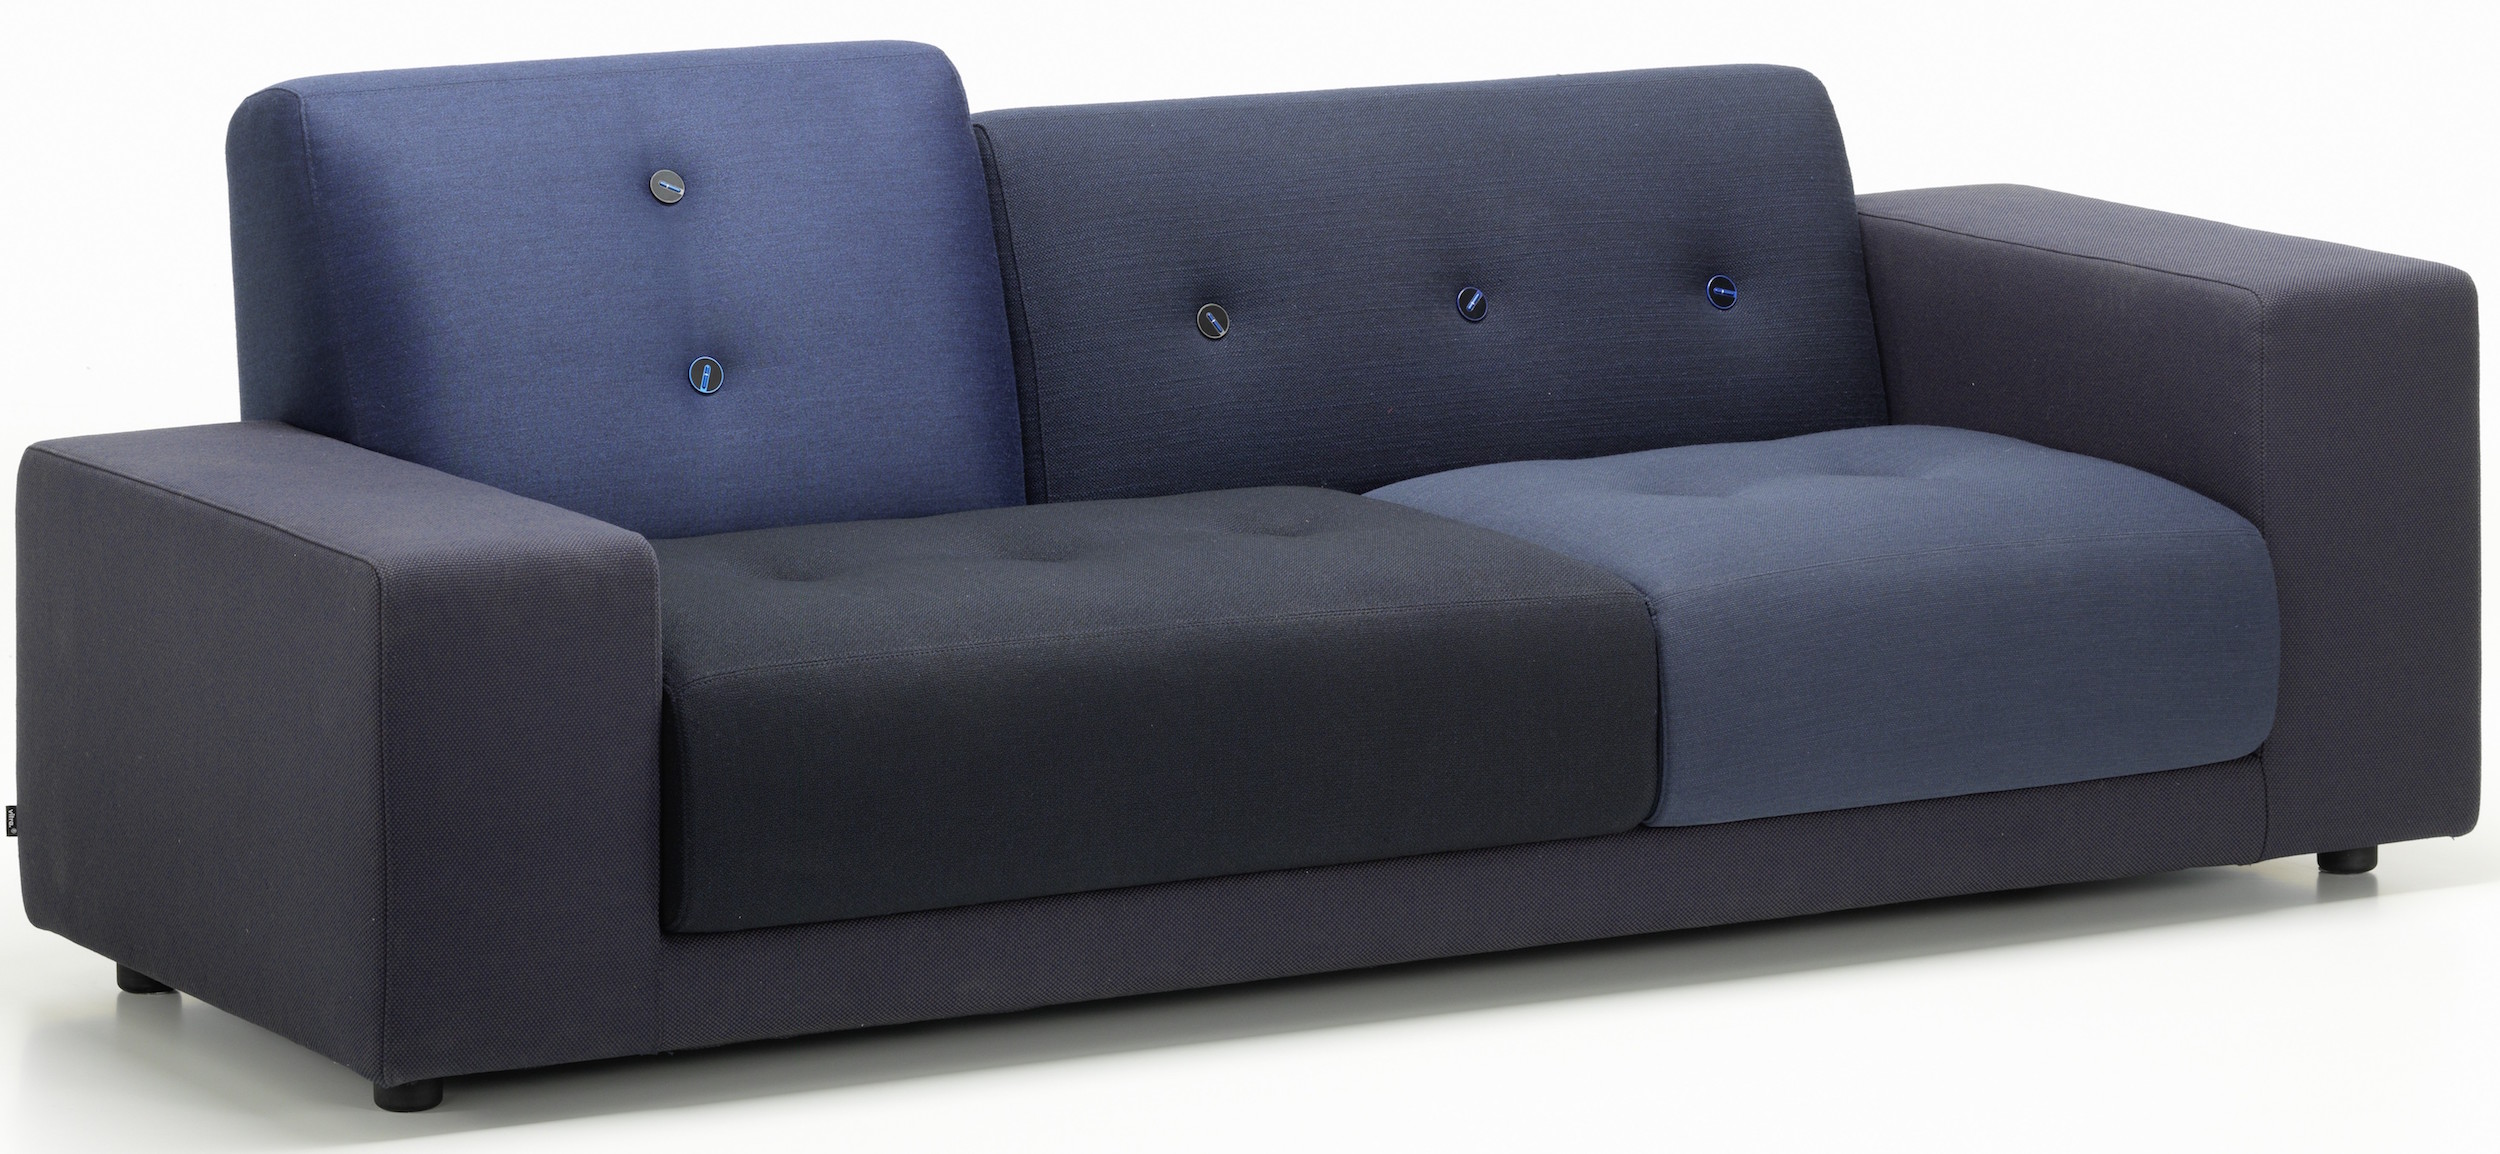 antony todd sofa minnie mouse couch polder blue home the honoroak